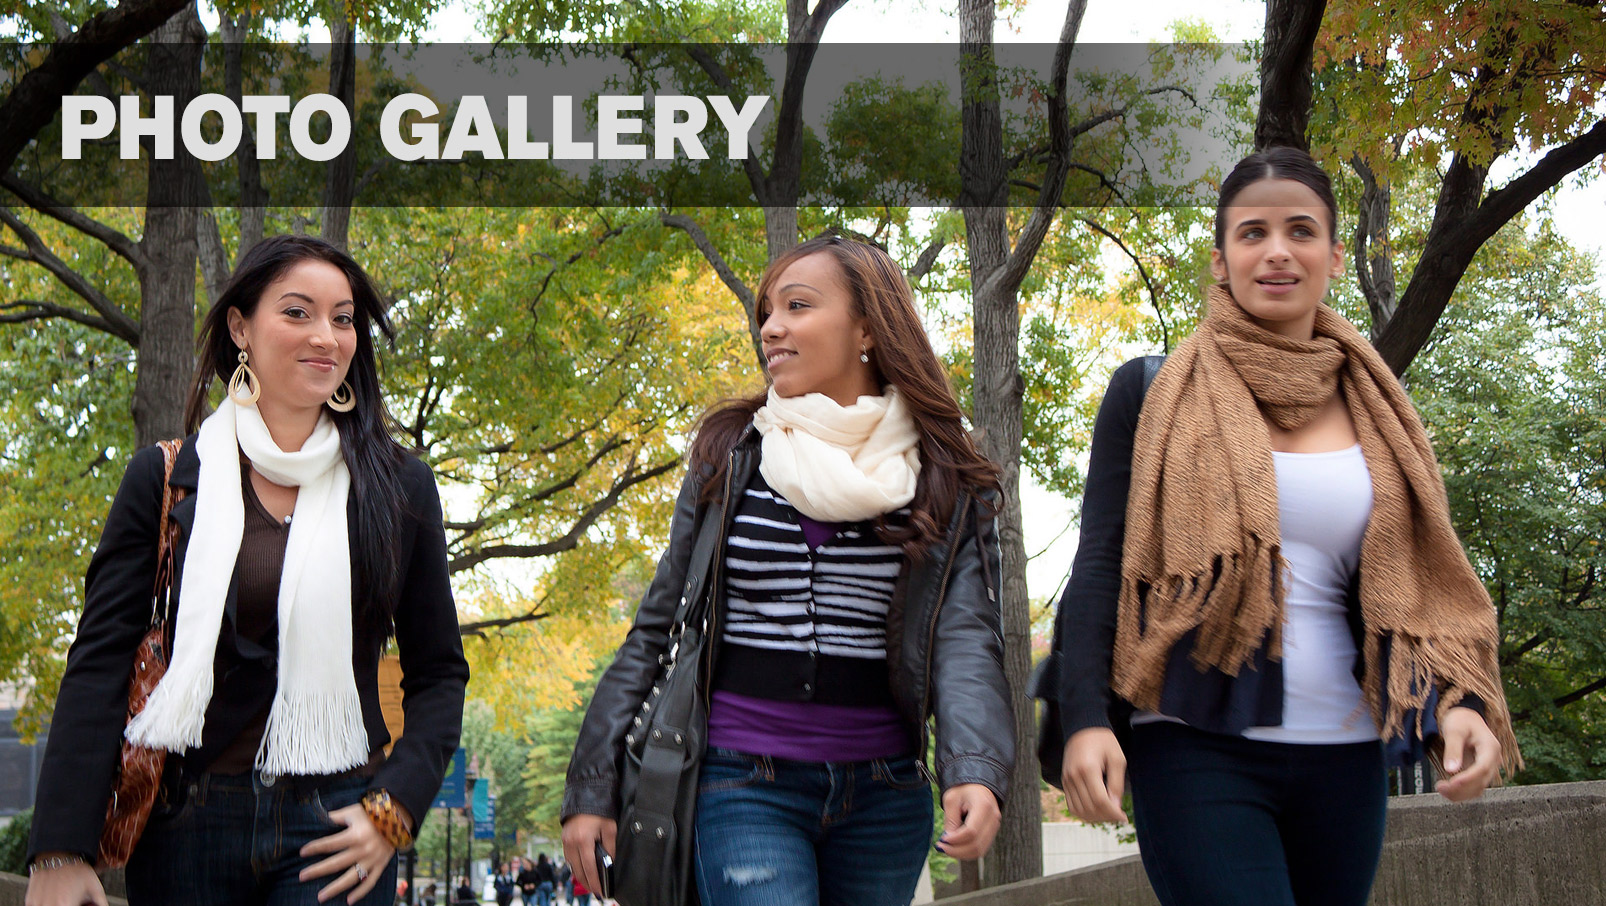 Lehman College Photo Gallery